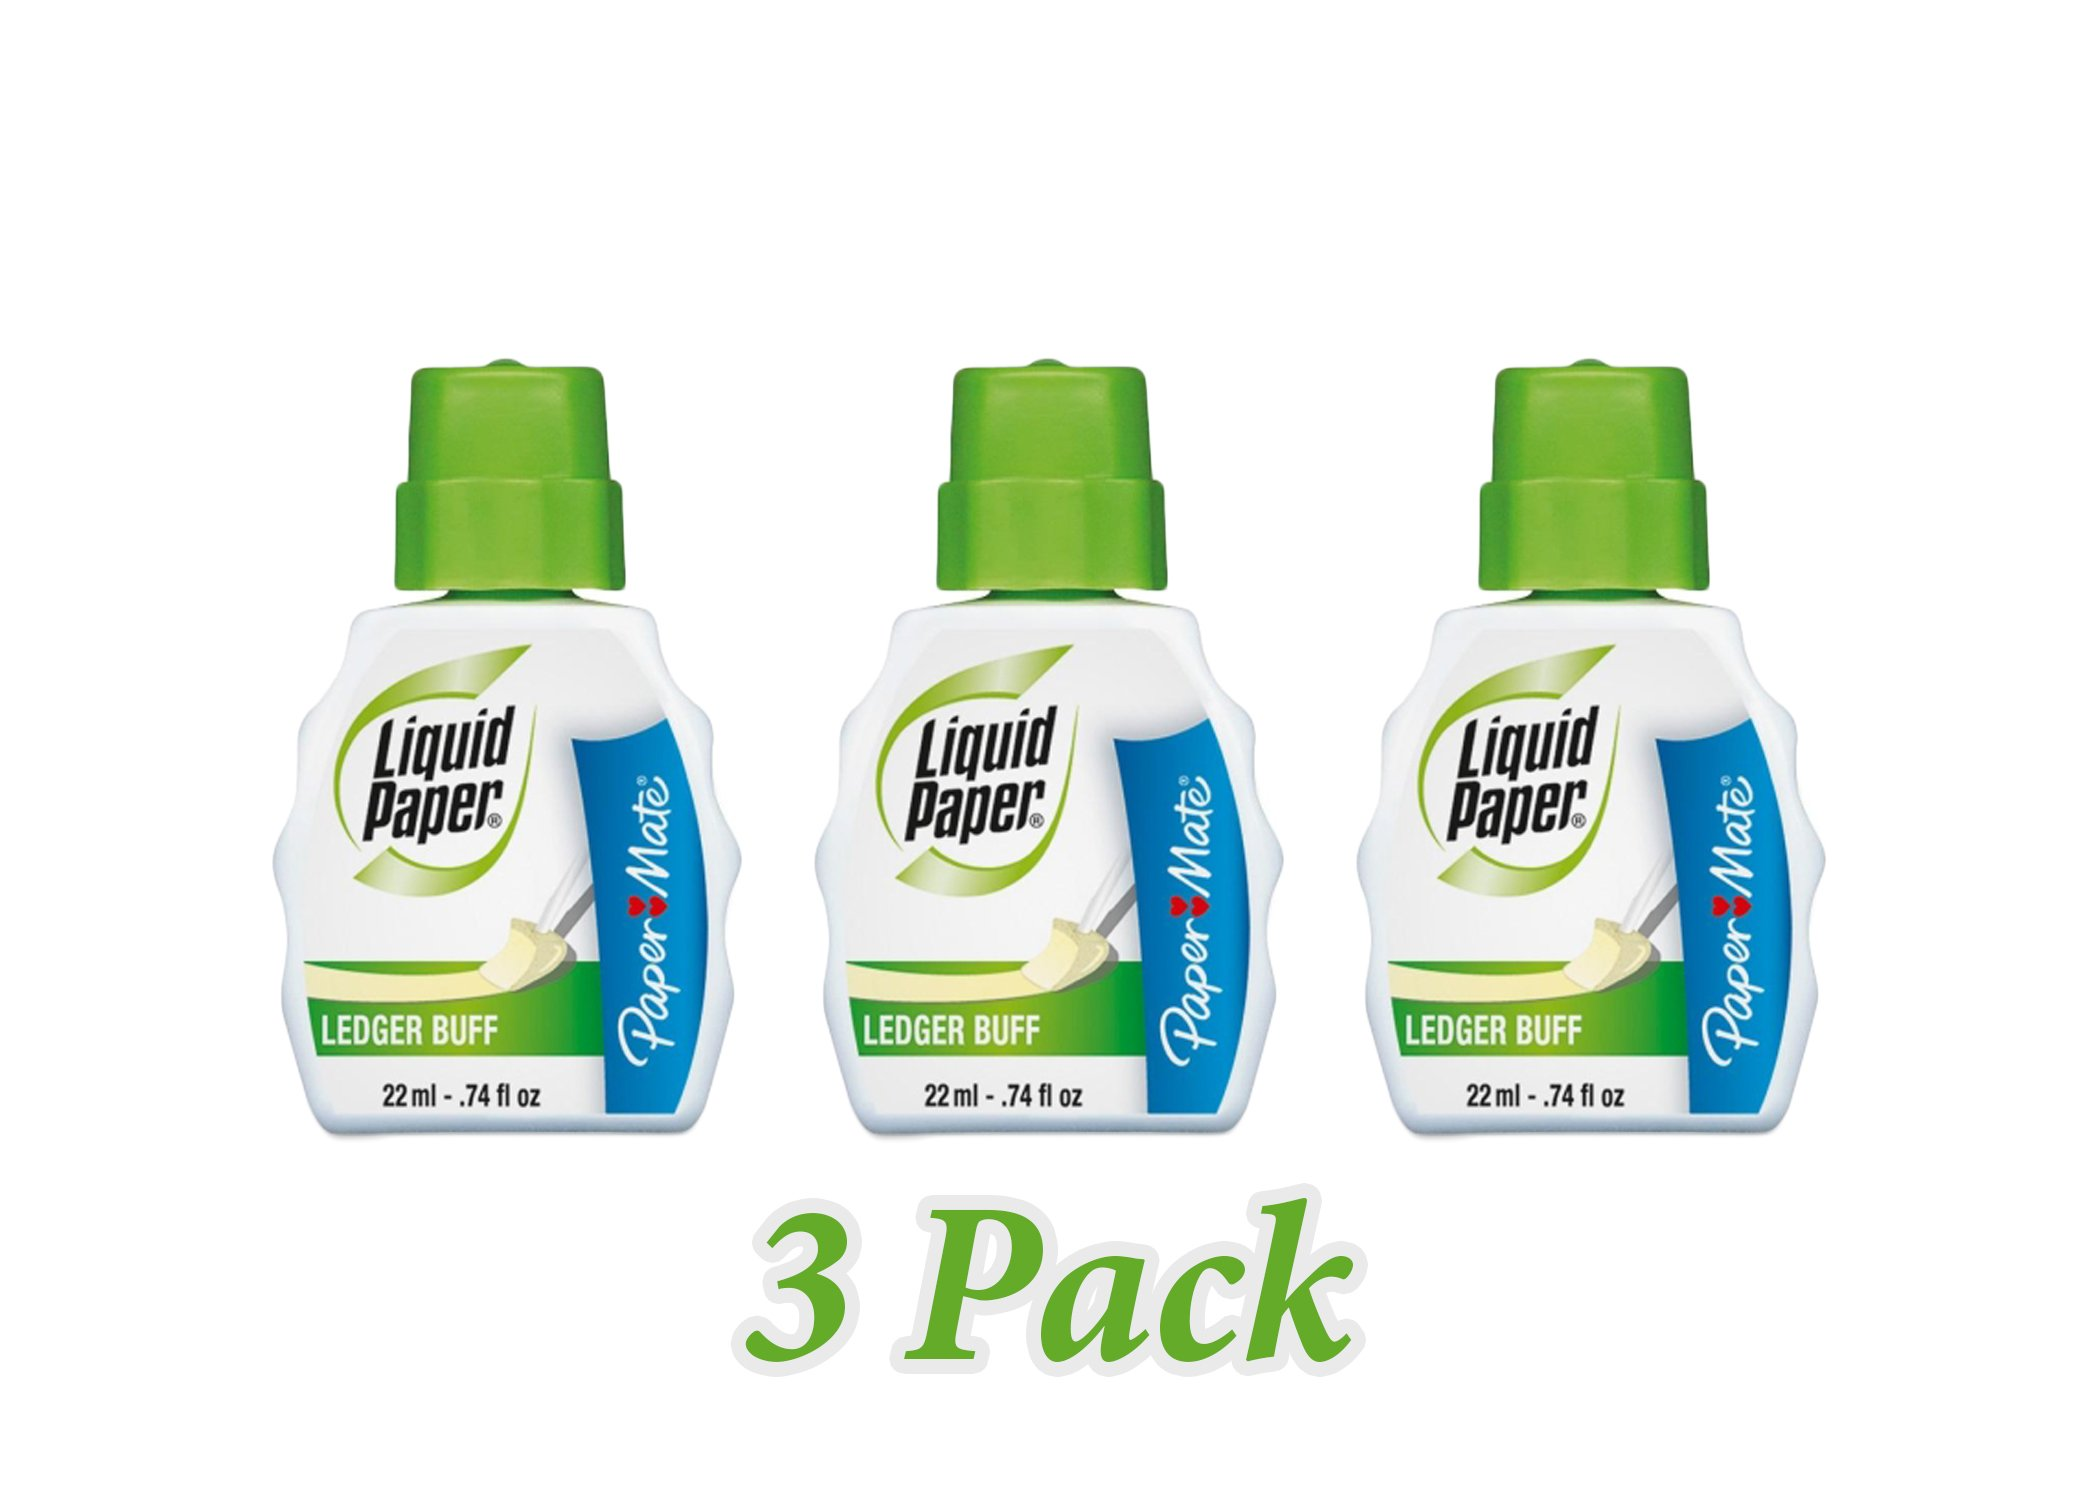 Paper Mate Correction Fluid, 22ml, Ledger Buff (PAP5660115) (3-Pack) by Paper Mate (Image #1)